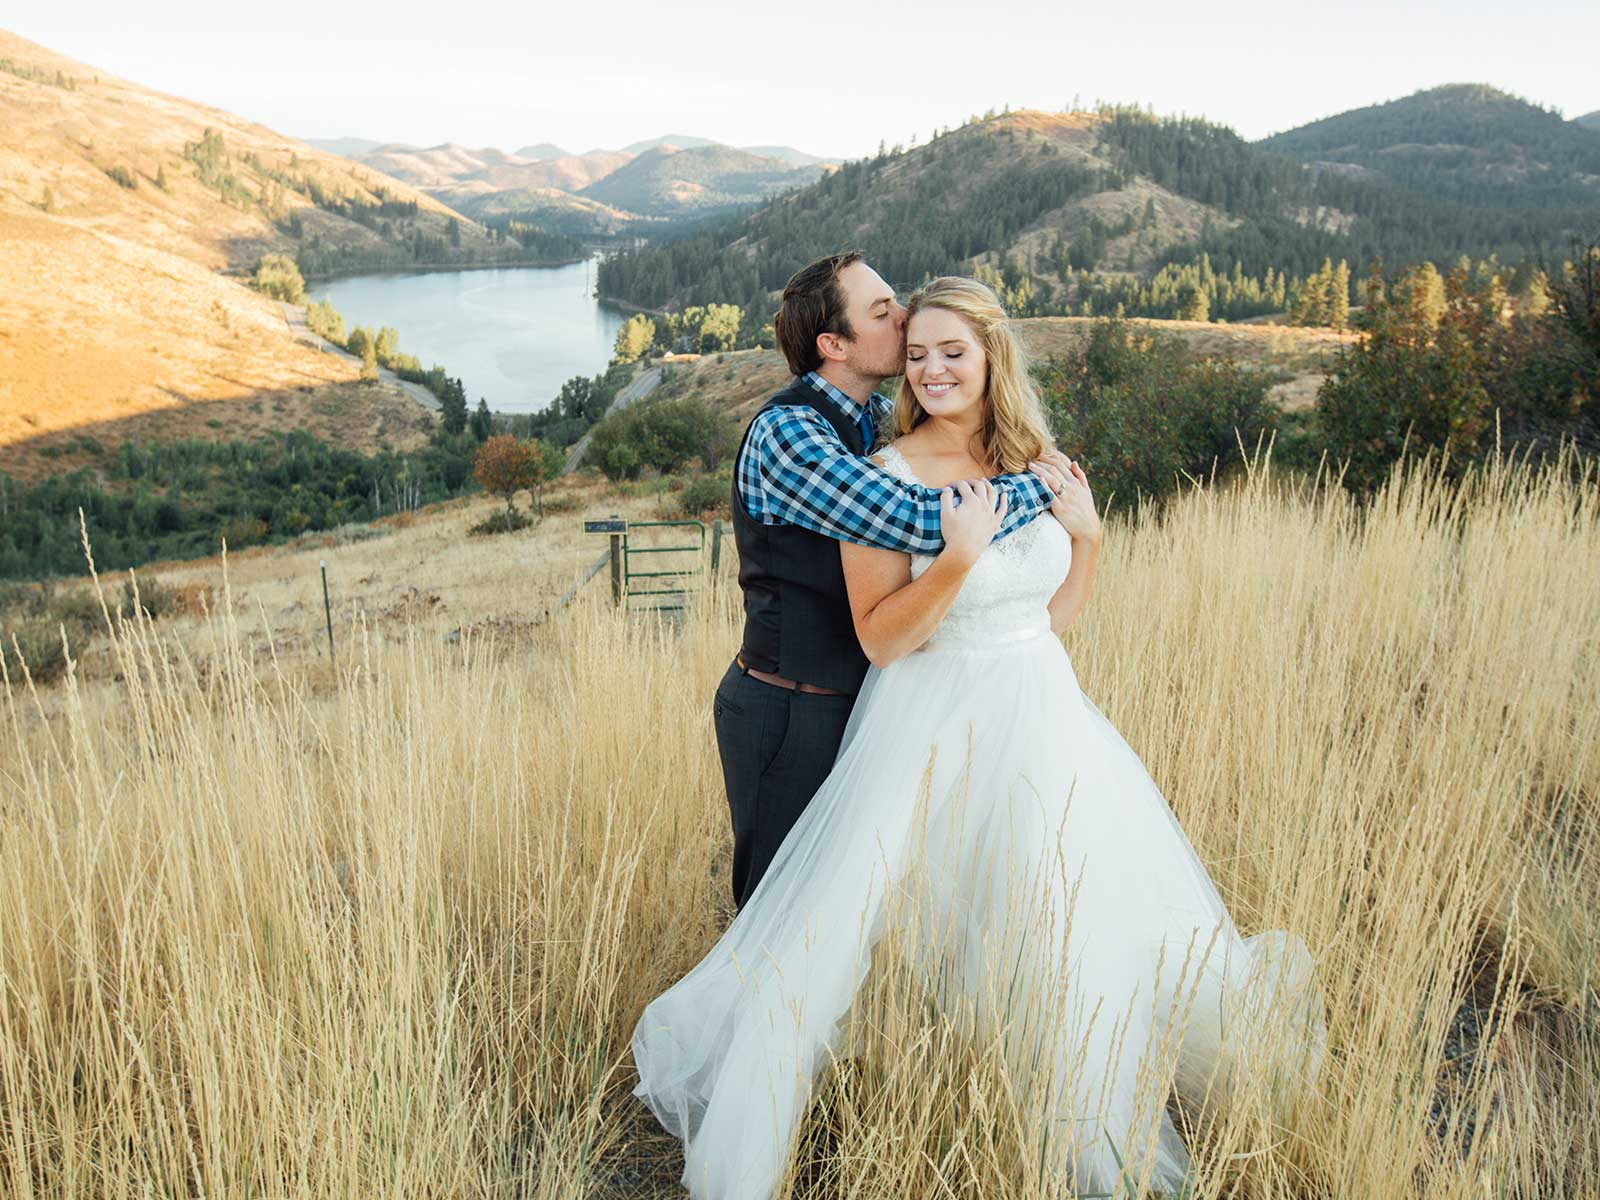 bride and groom in field with mountain view